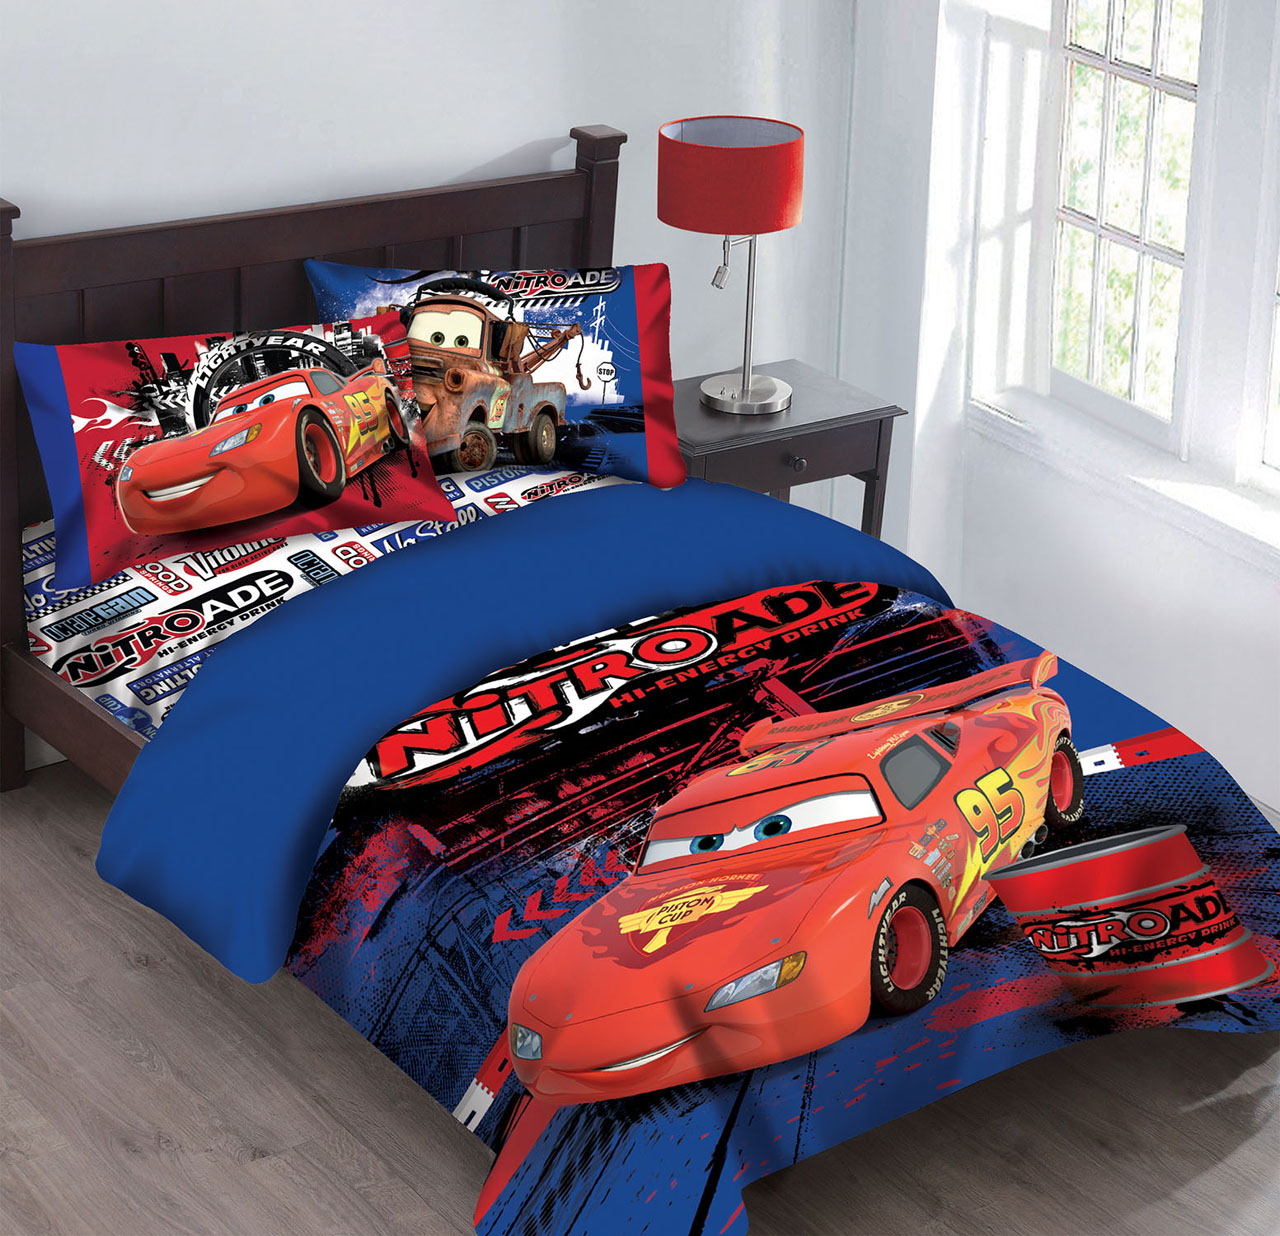 Disney Cars Nitroade Bedding Comforter Set With Fitted Sheet